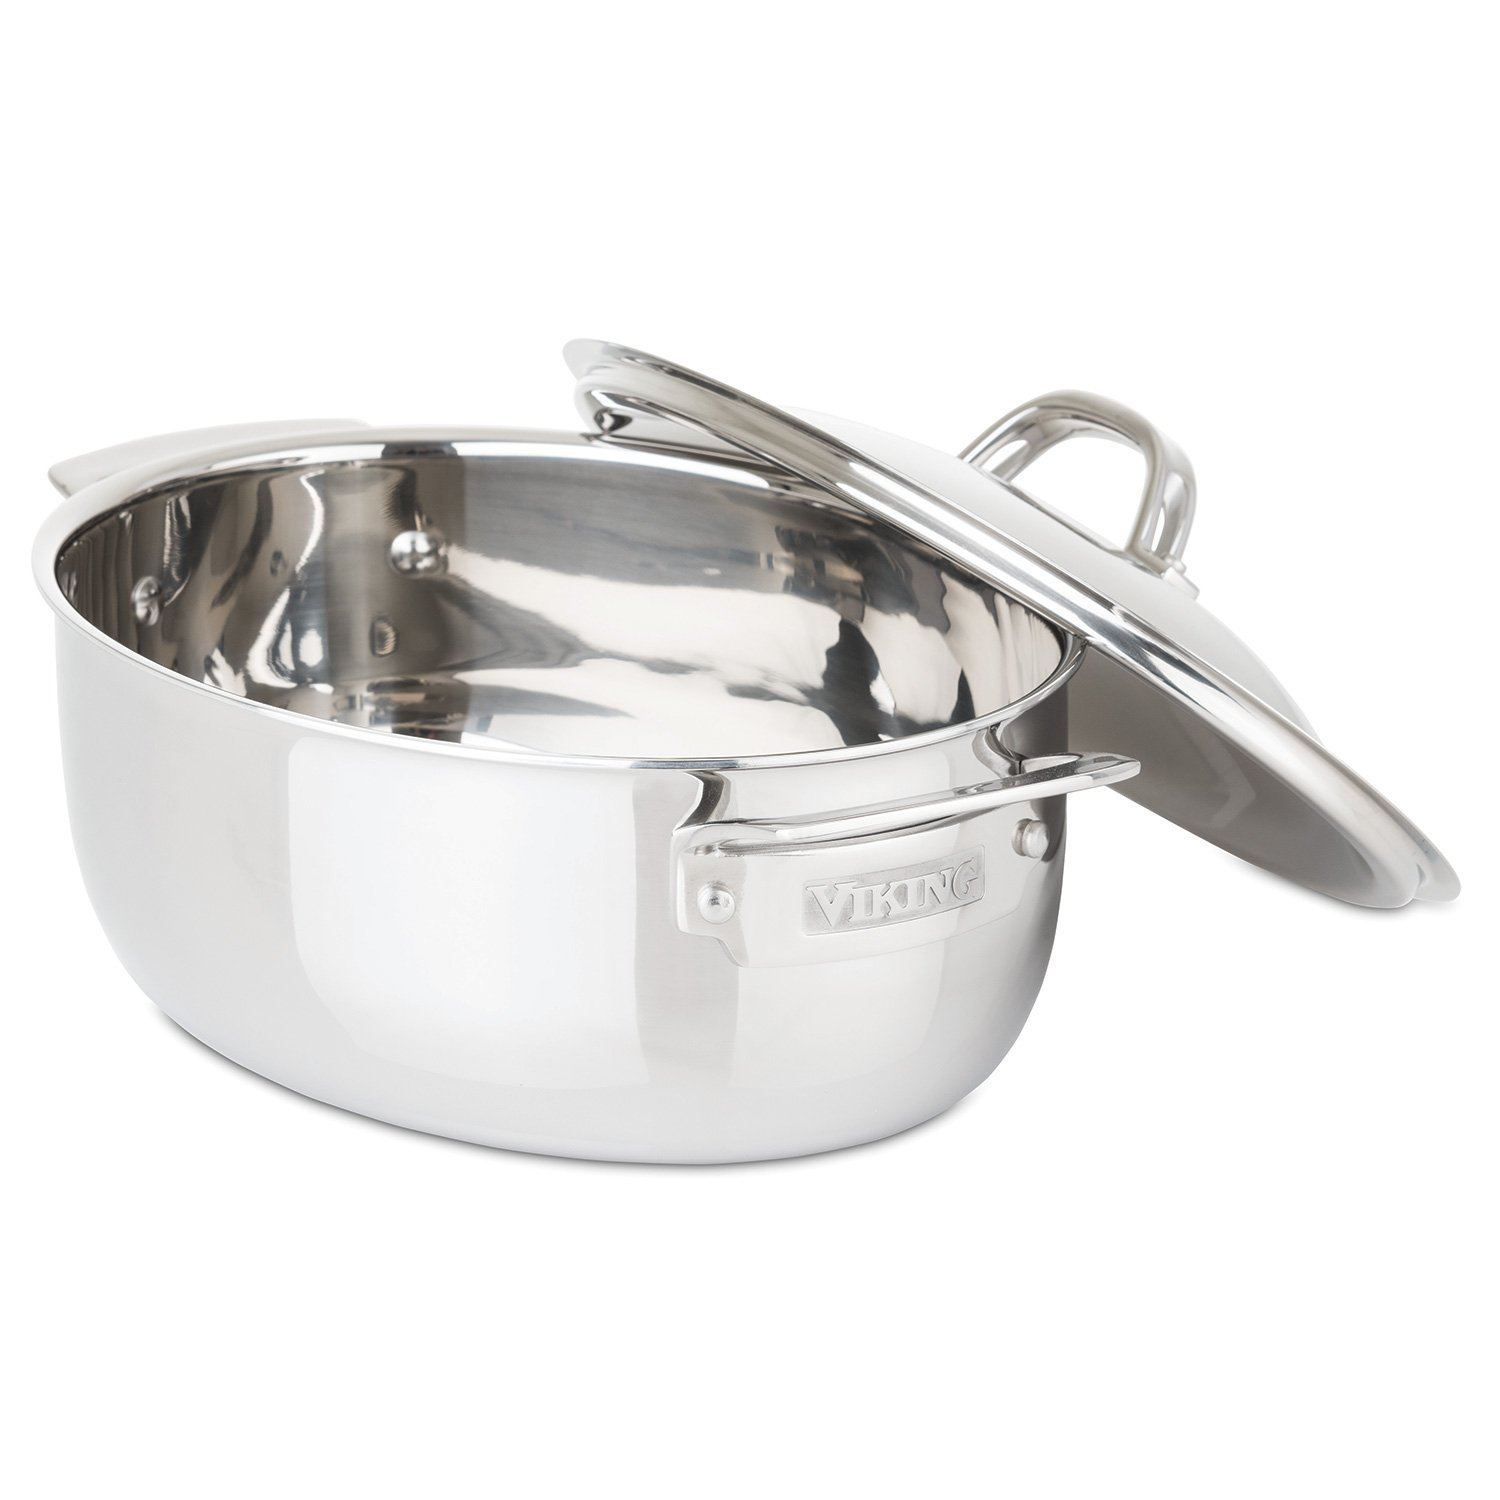 Viking 40011-0825 3-Ply Stainless Steel Oval Dutch Oven, 5.5 Quart